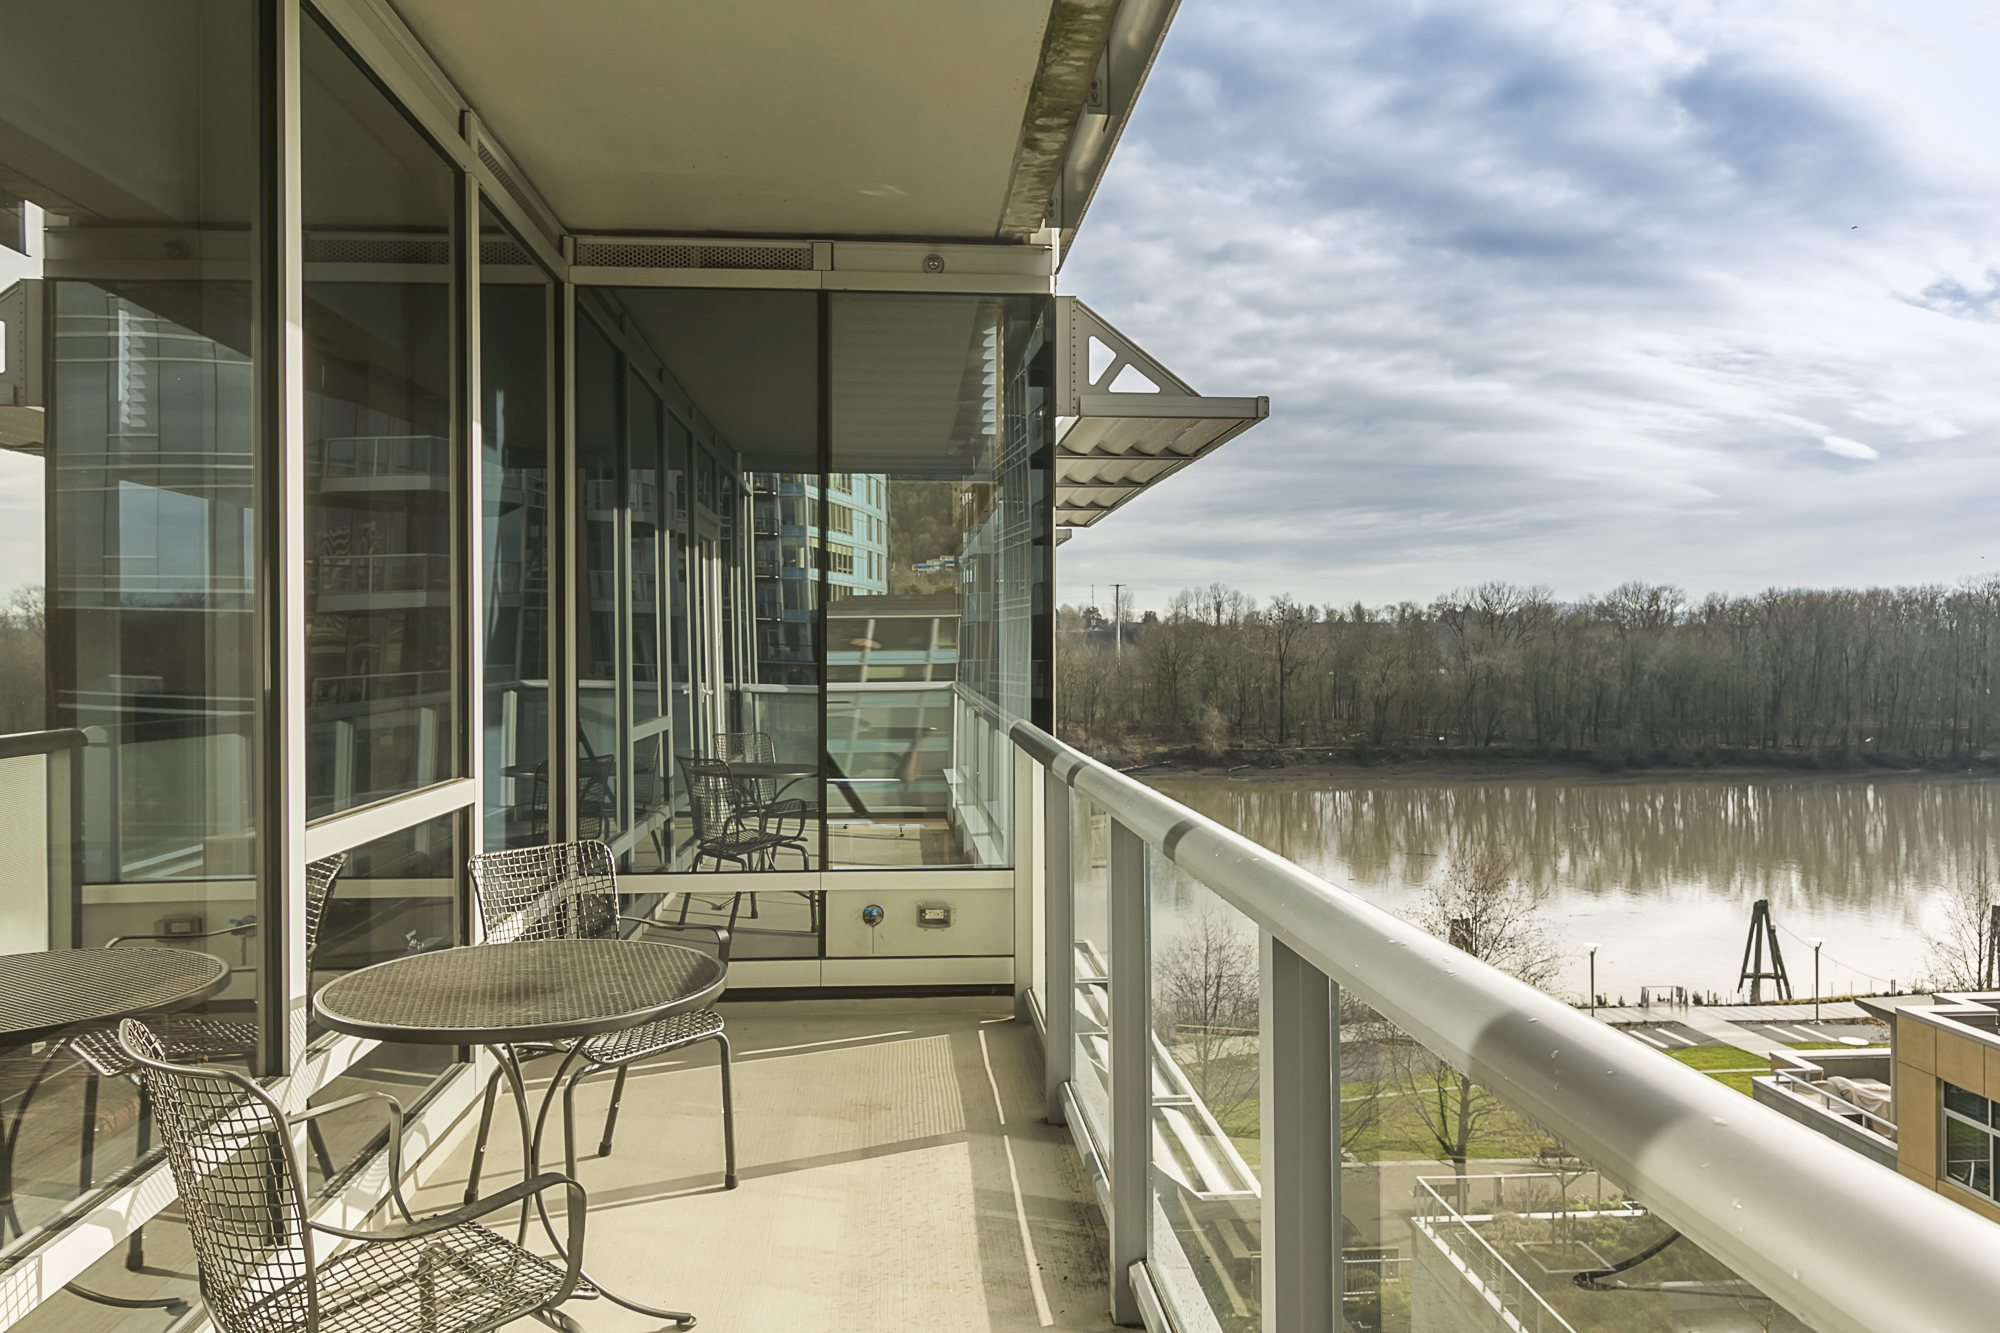 SOUTH WATERFRONT - MERIWETHER